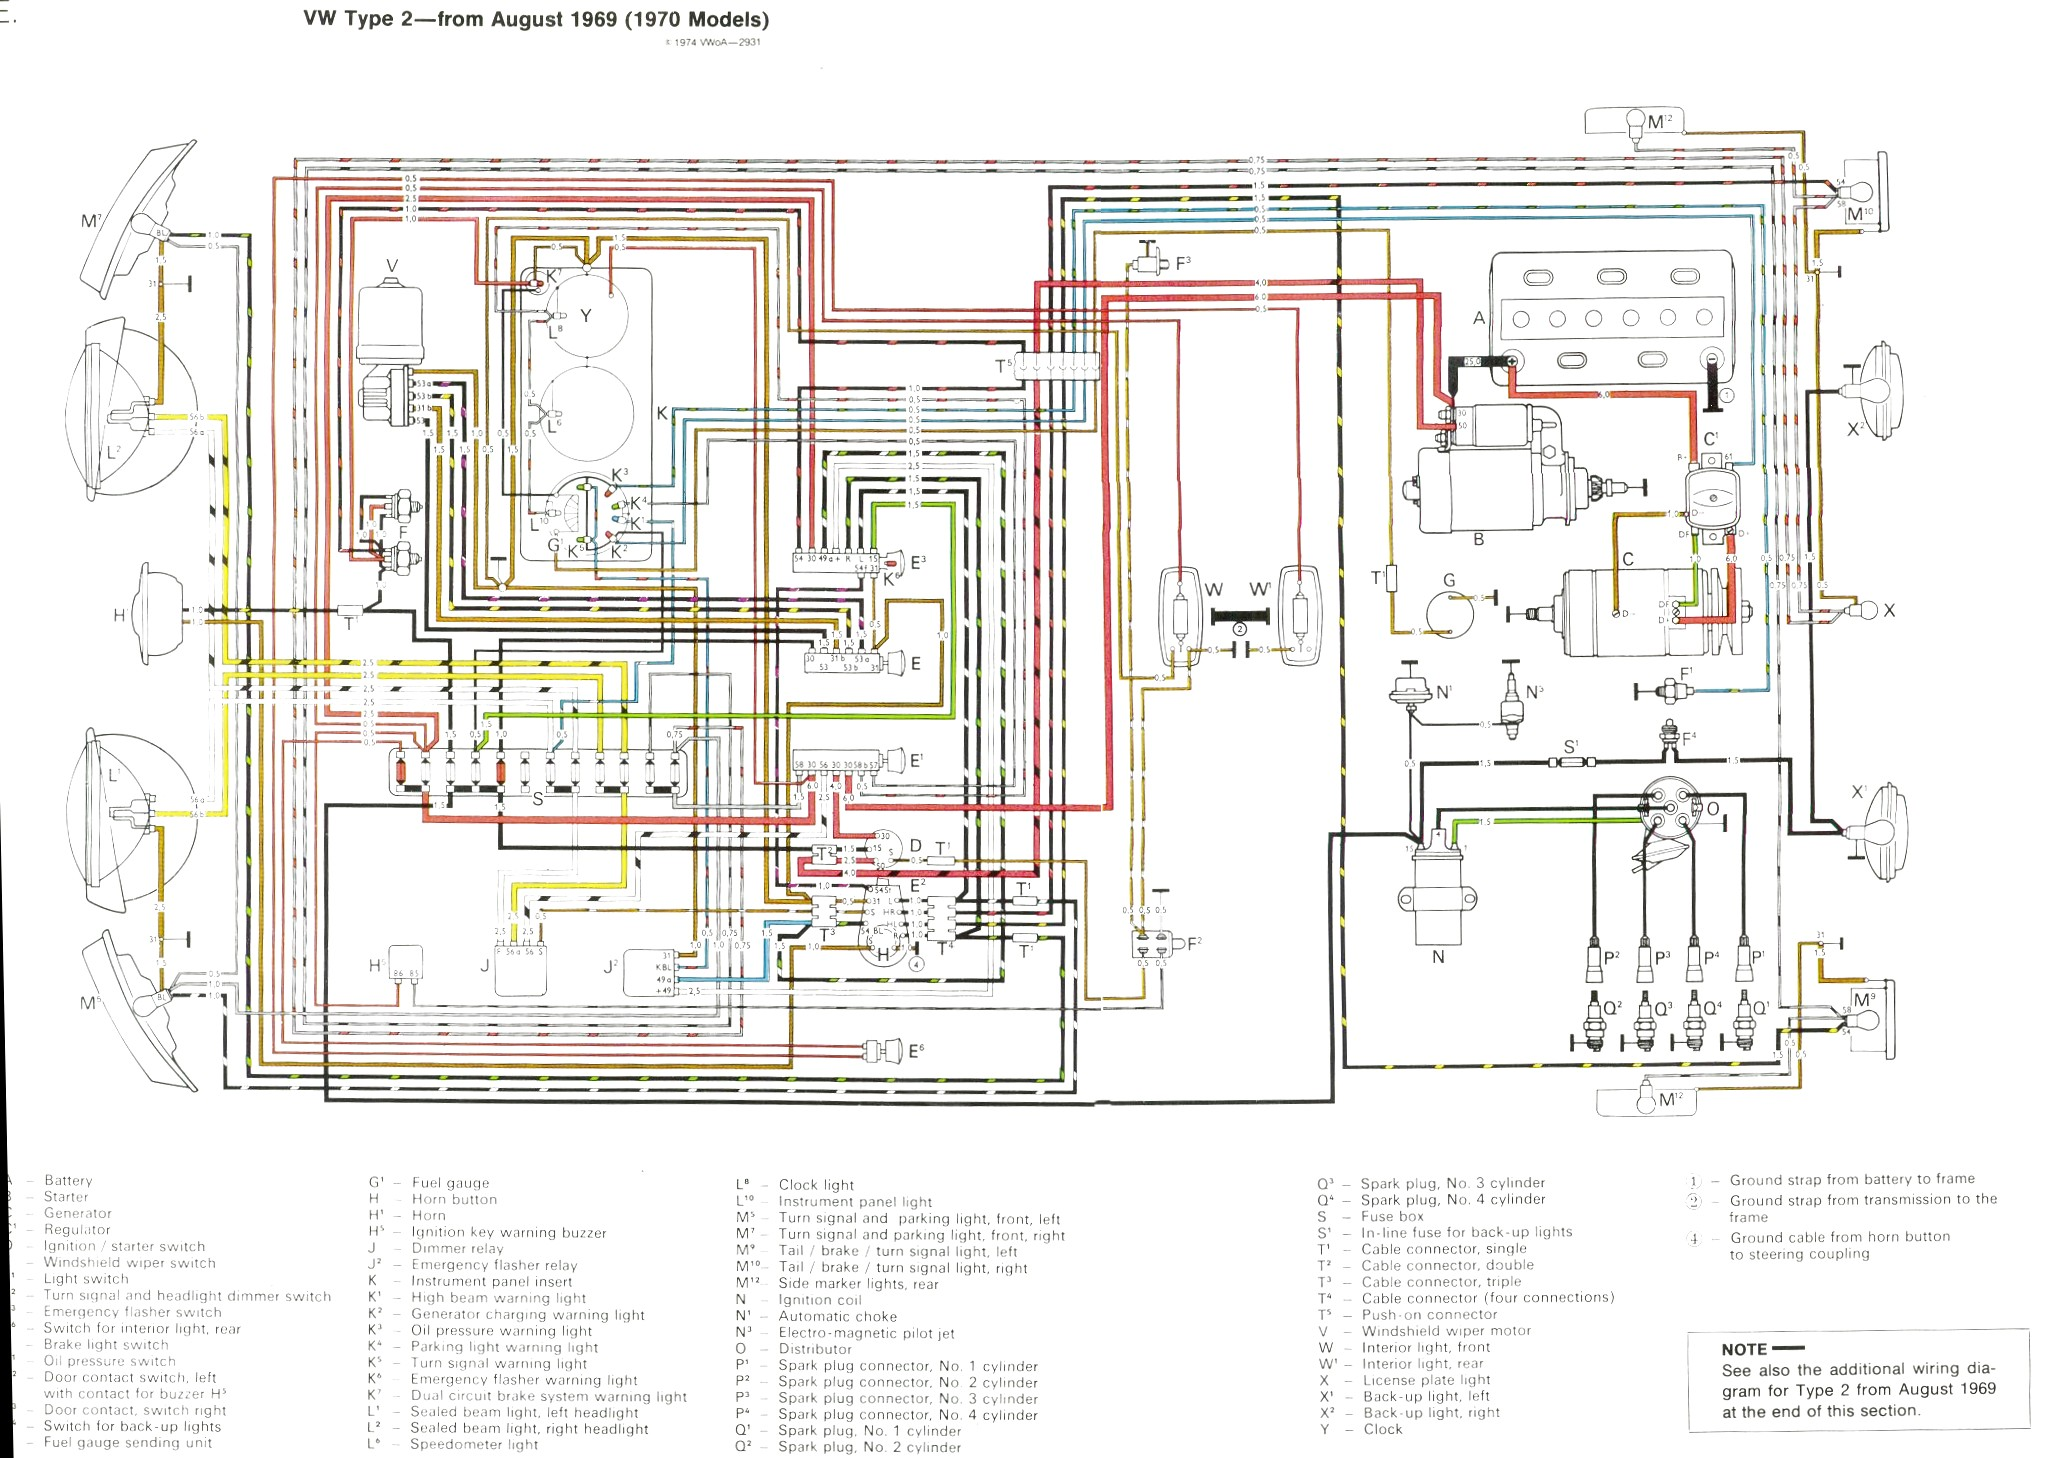 bus 69 70 vw wiring diagrams 69 vw wiring diagram at bayanpartner.co